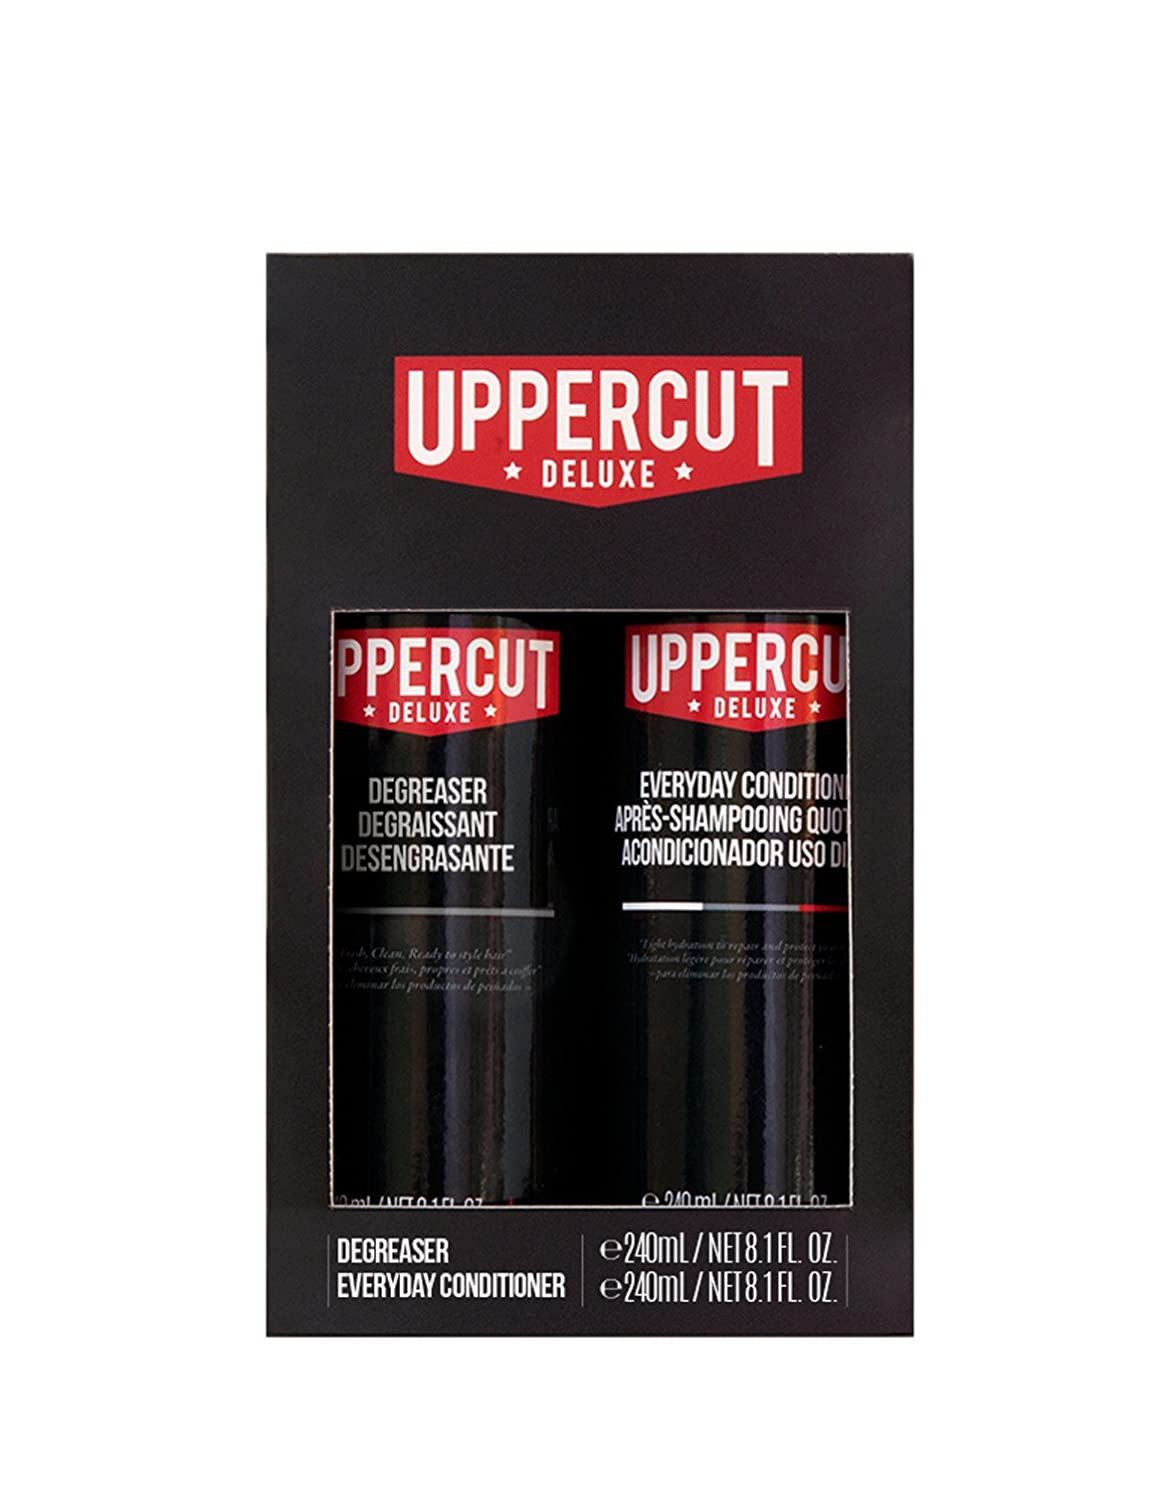 Everyday Degreaser and Everyday Conditioner for men by Uppercut Deluxe